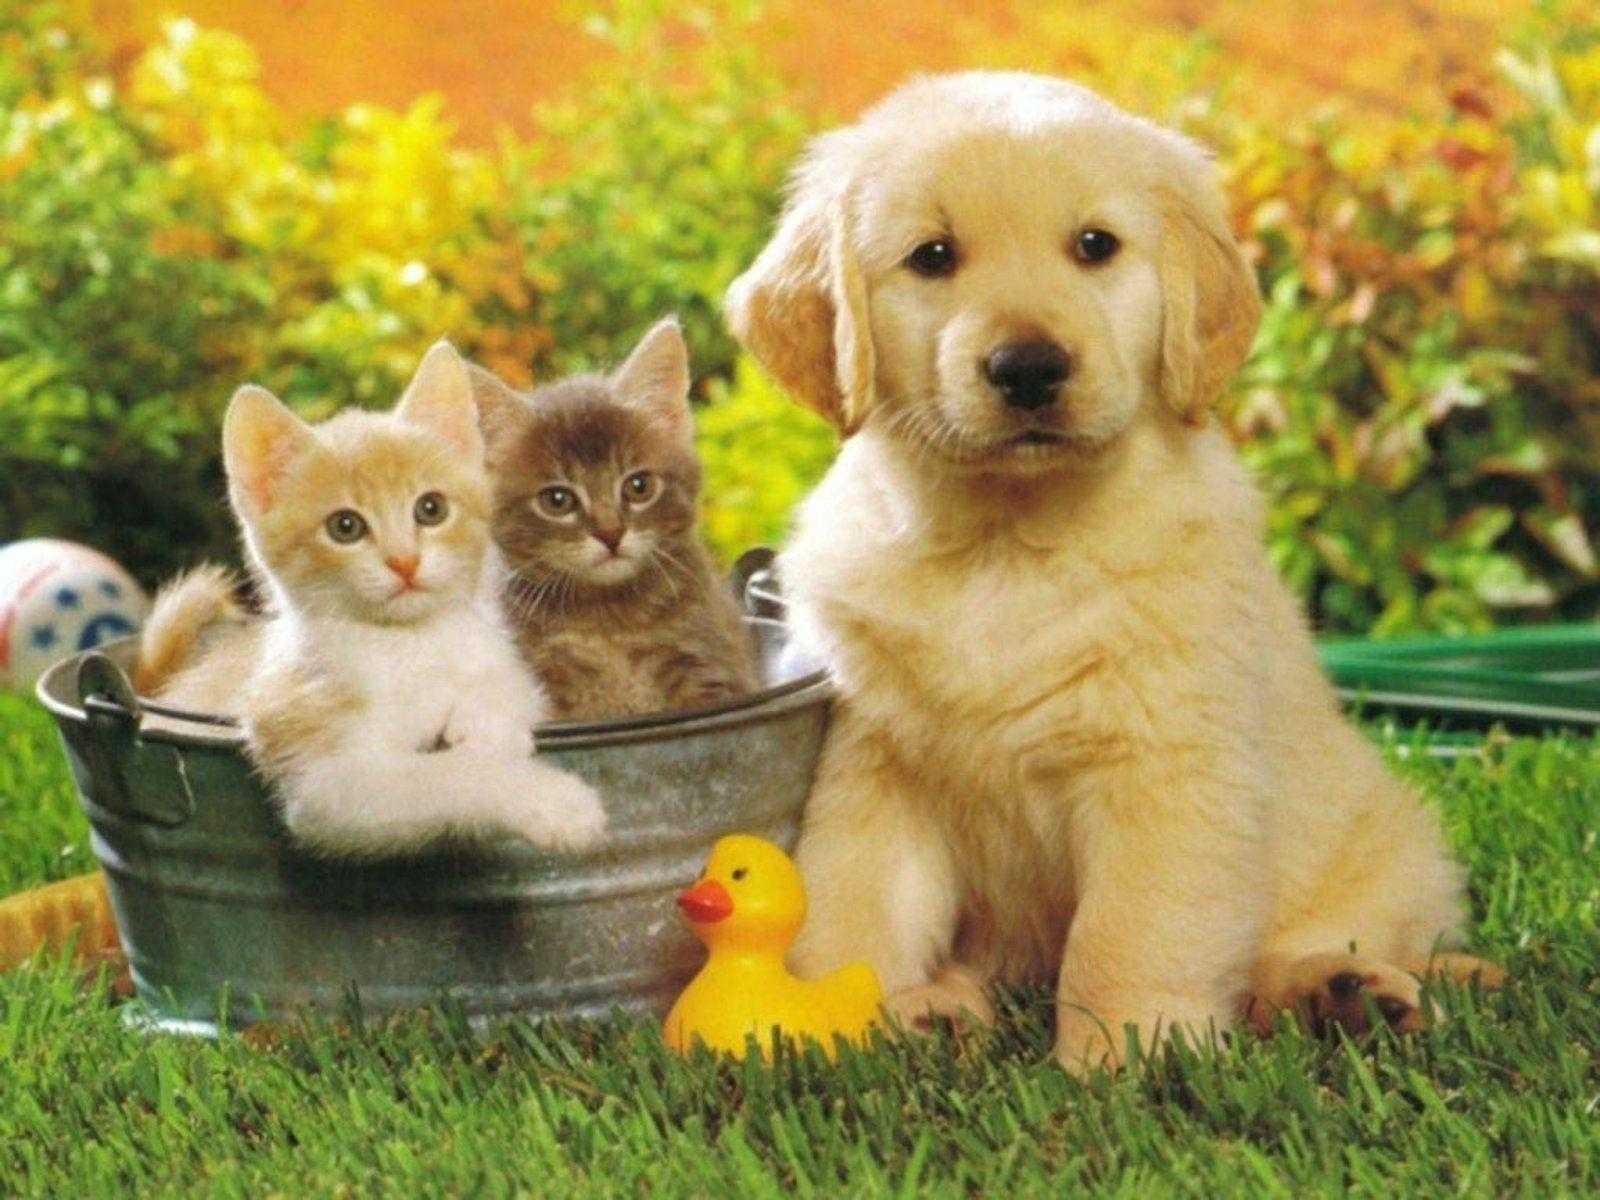 10 Top Puppy And Kitten Wallpaper FULL HD 1920×1080 For PC Background